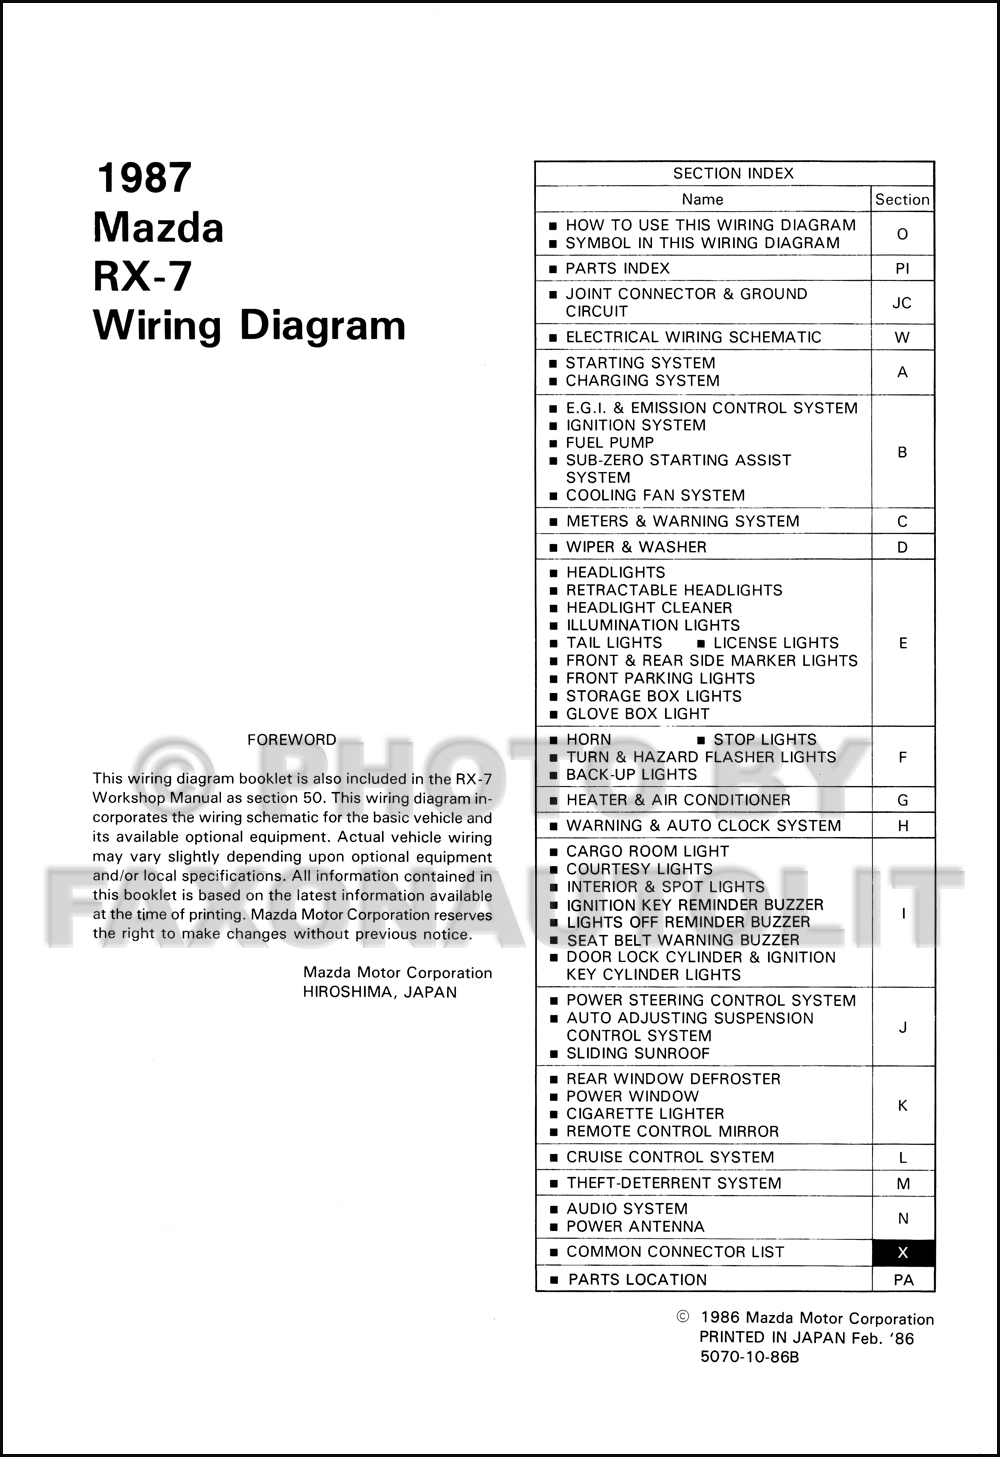 1987 Mazda RX-7 Wiring Diagram Manual Original RX7